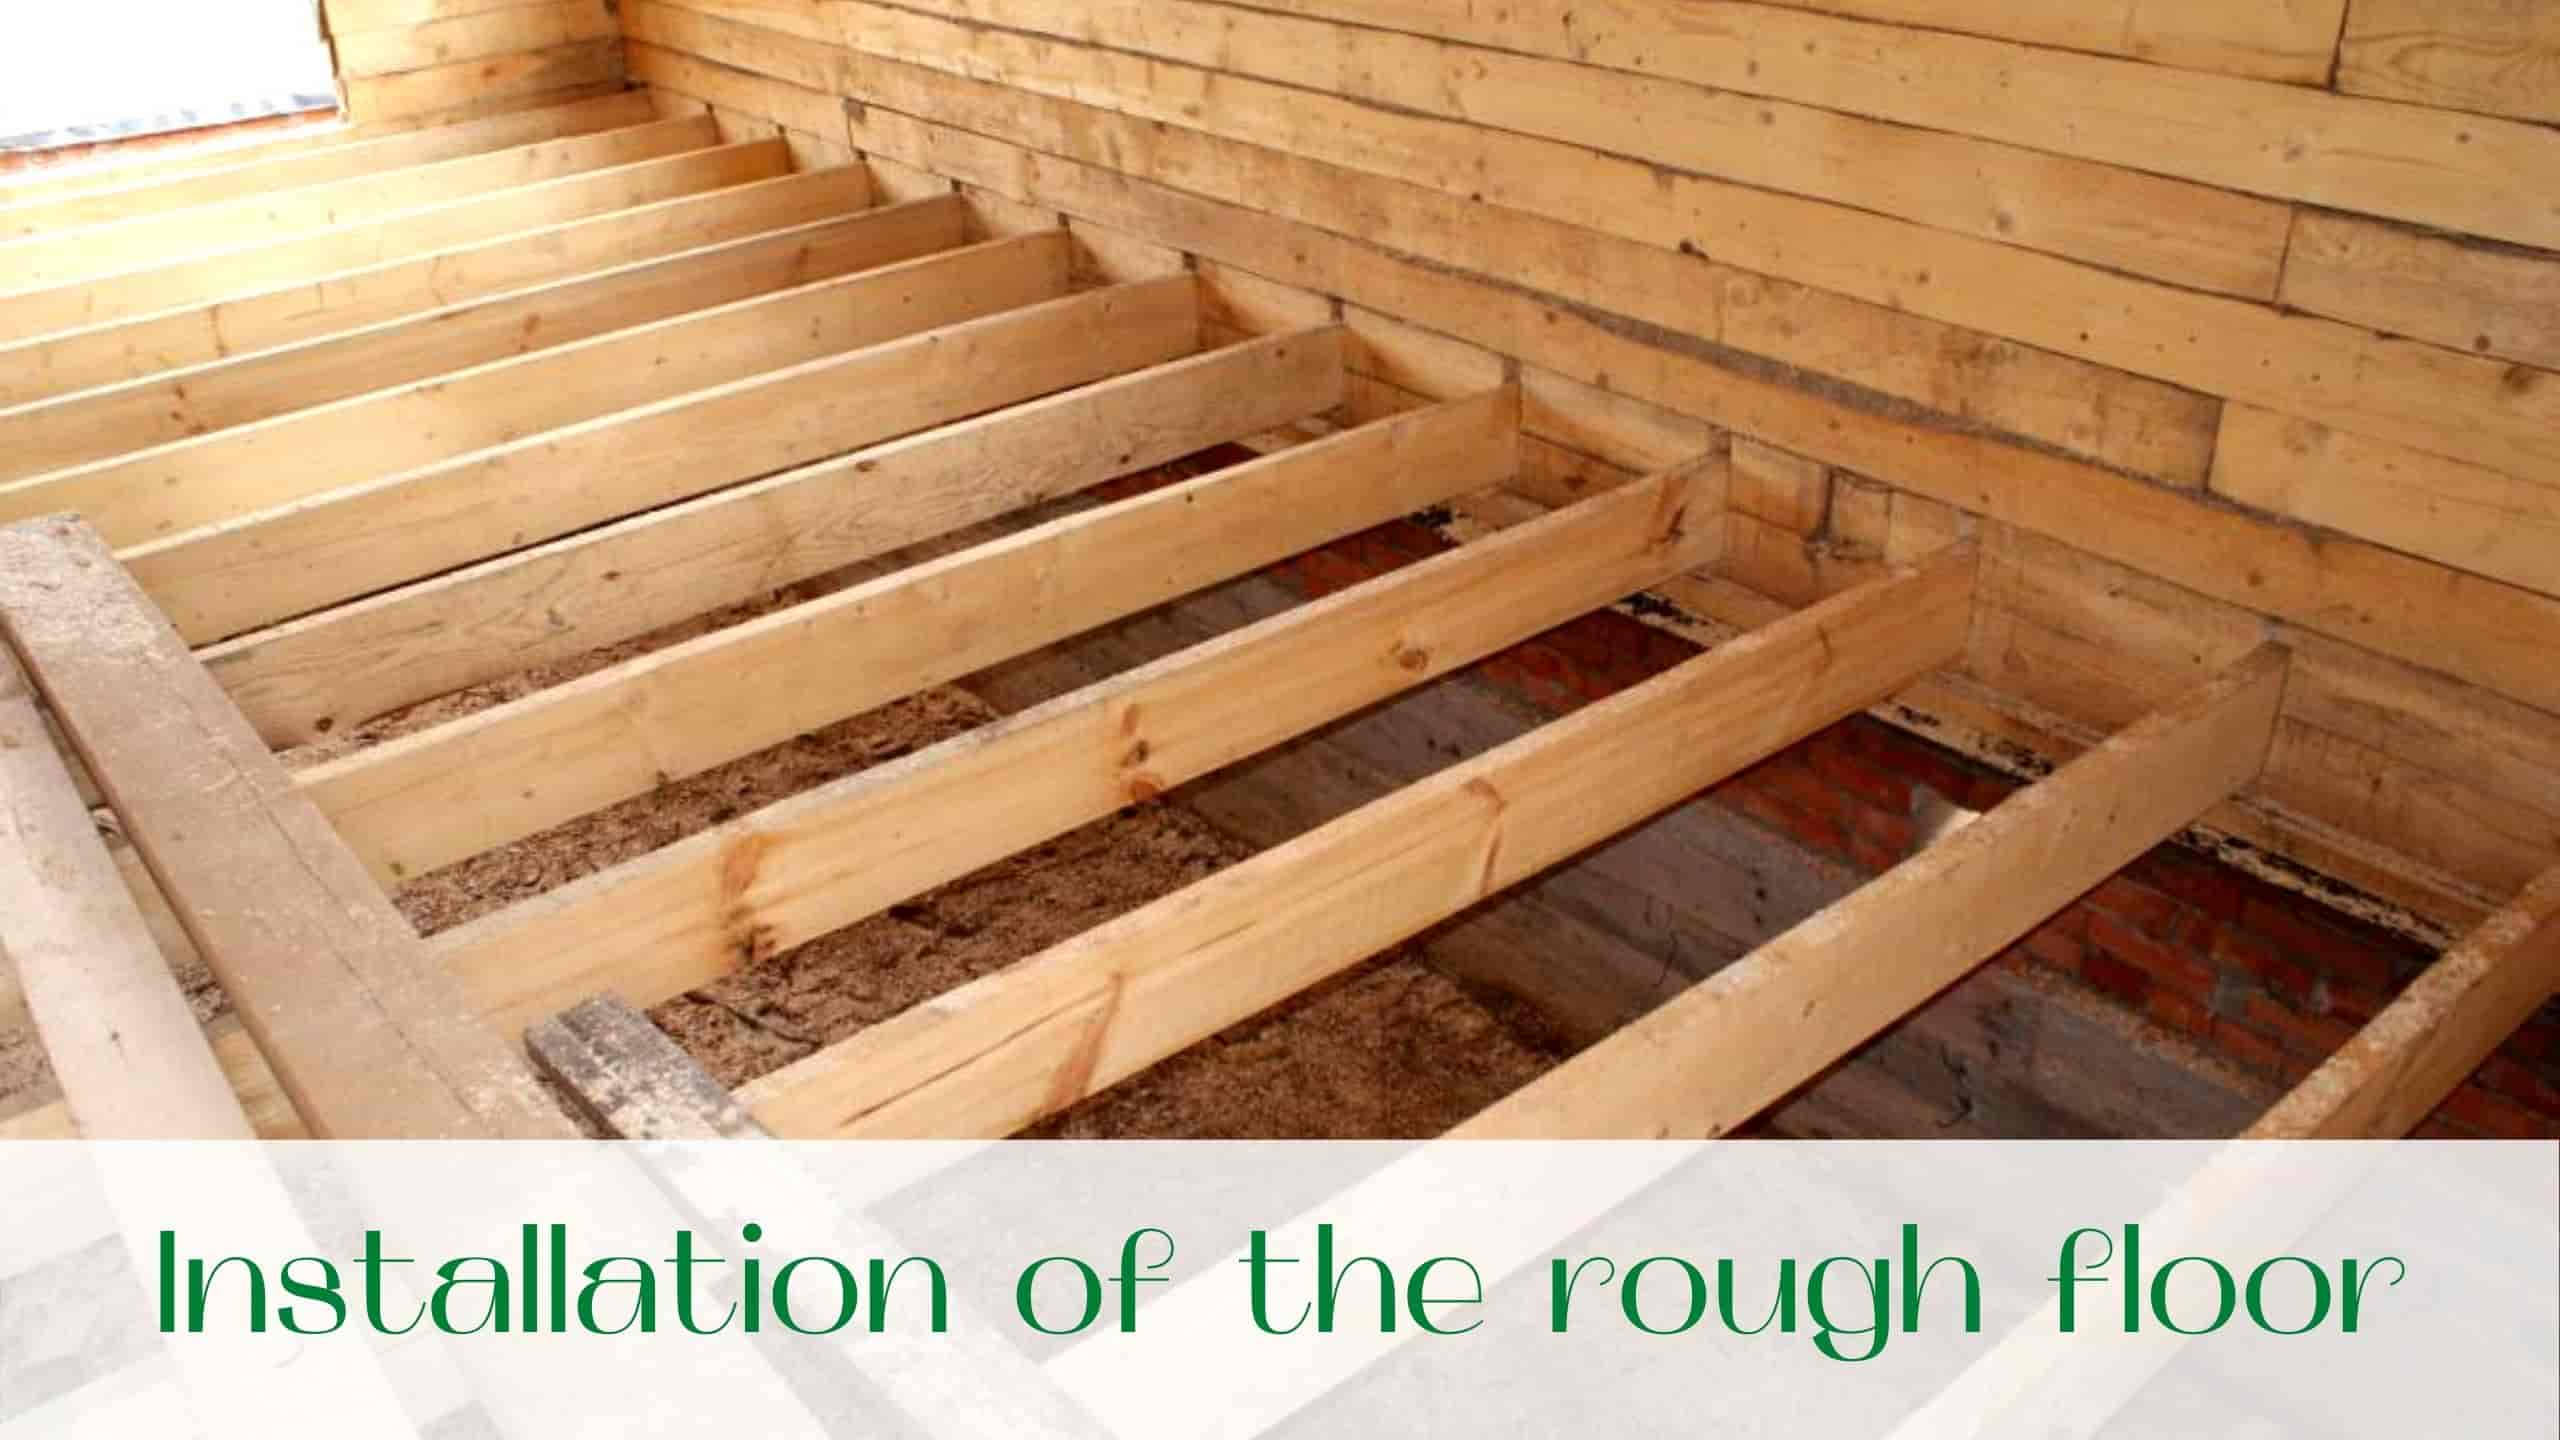 image-Installation-of-the-rough-floor-in-Toronto